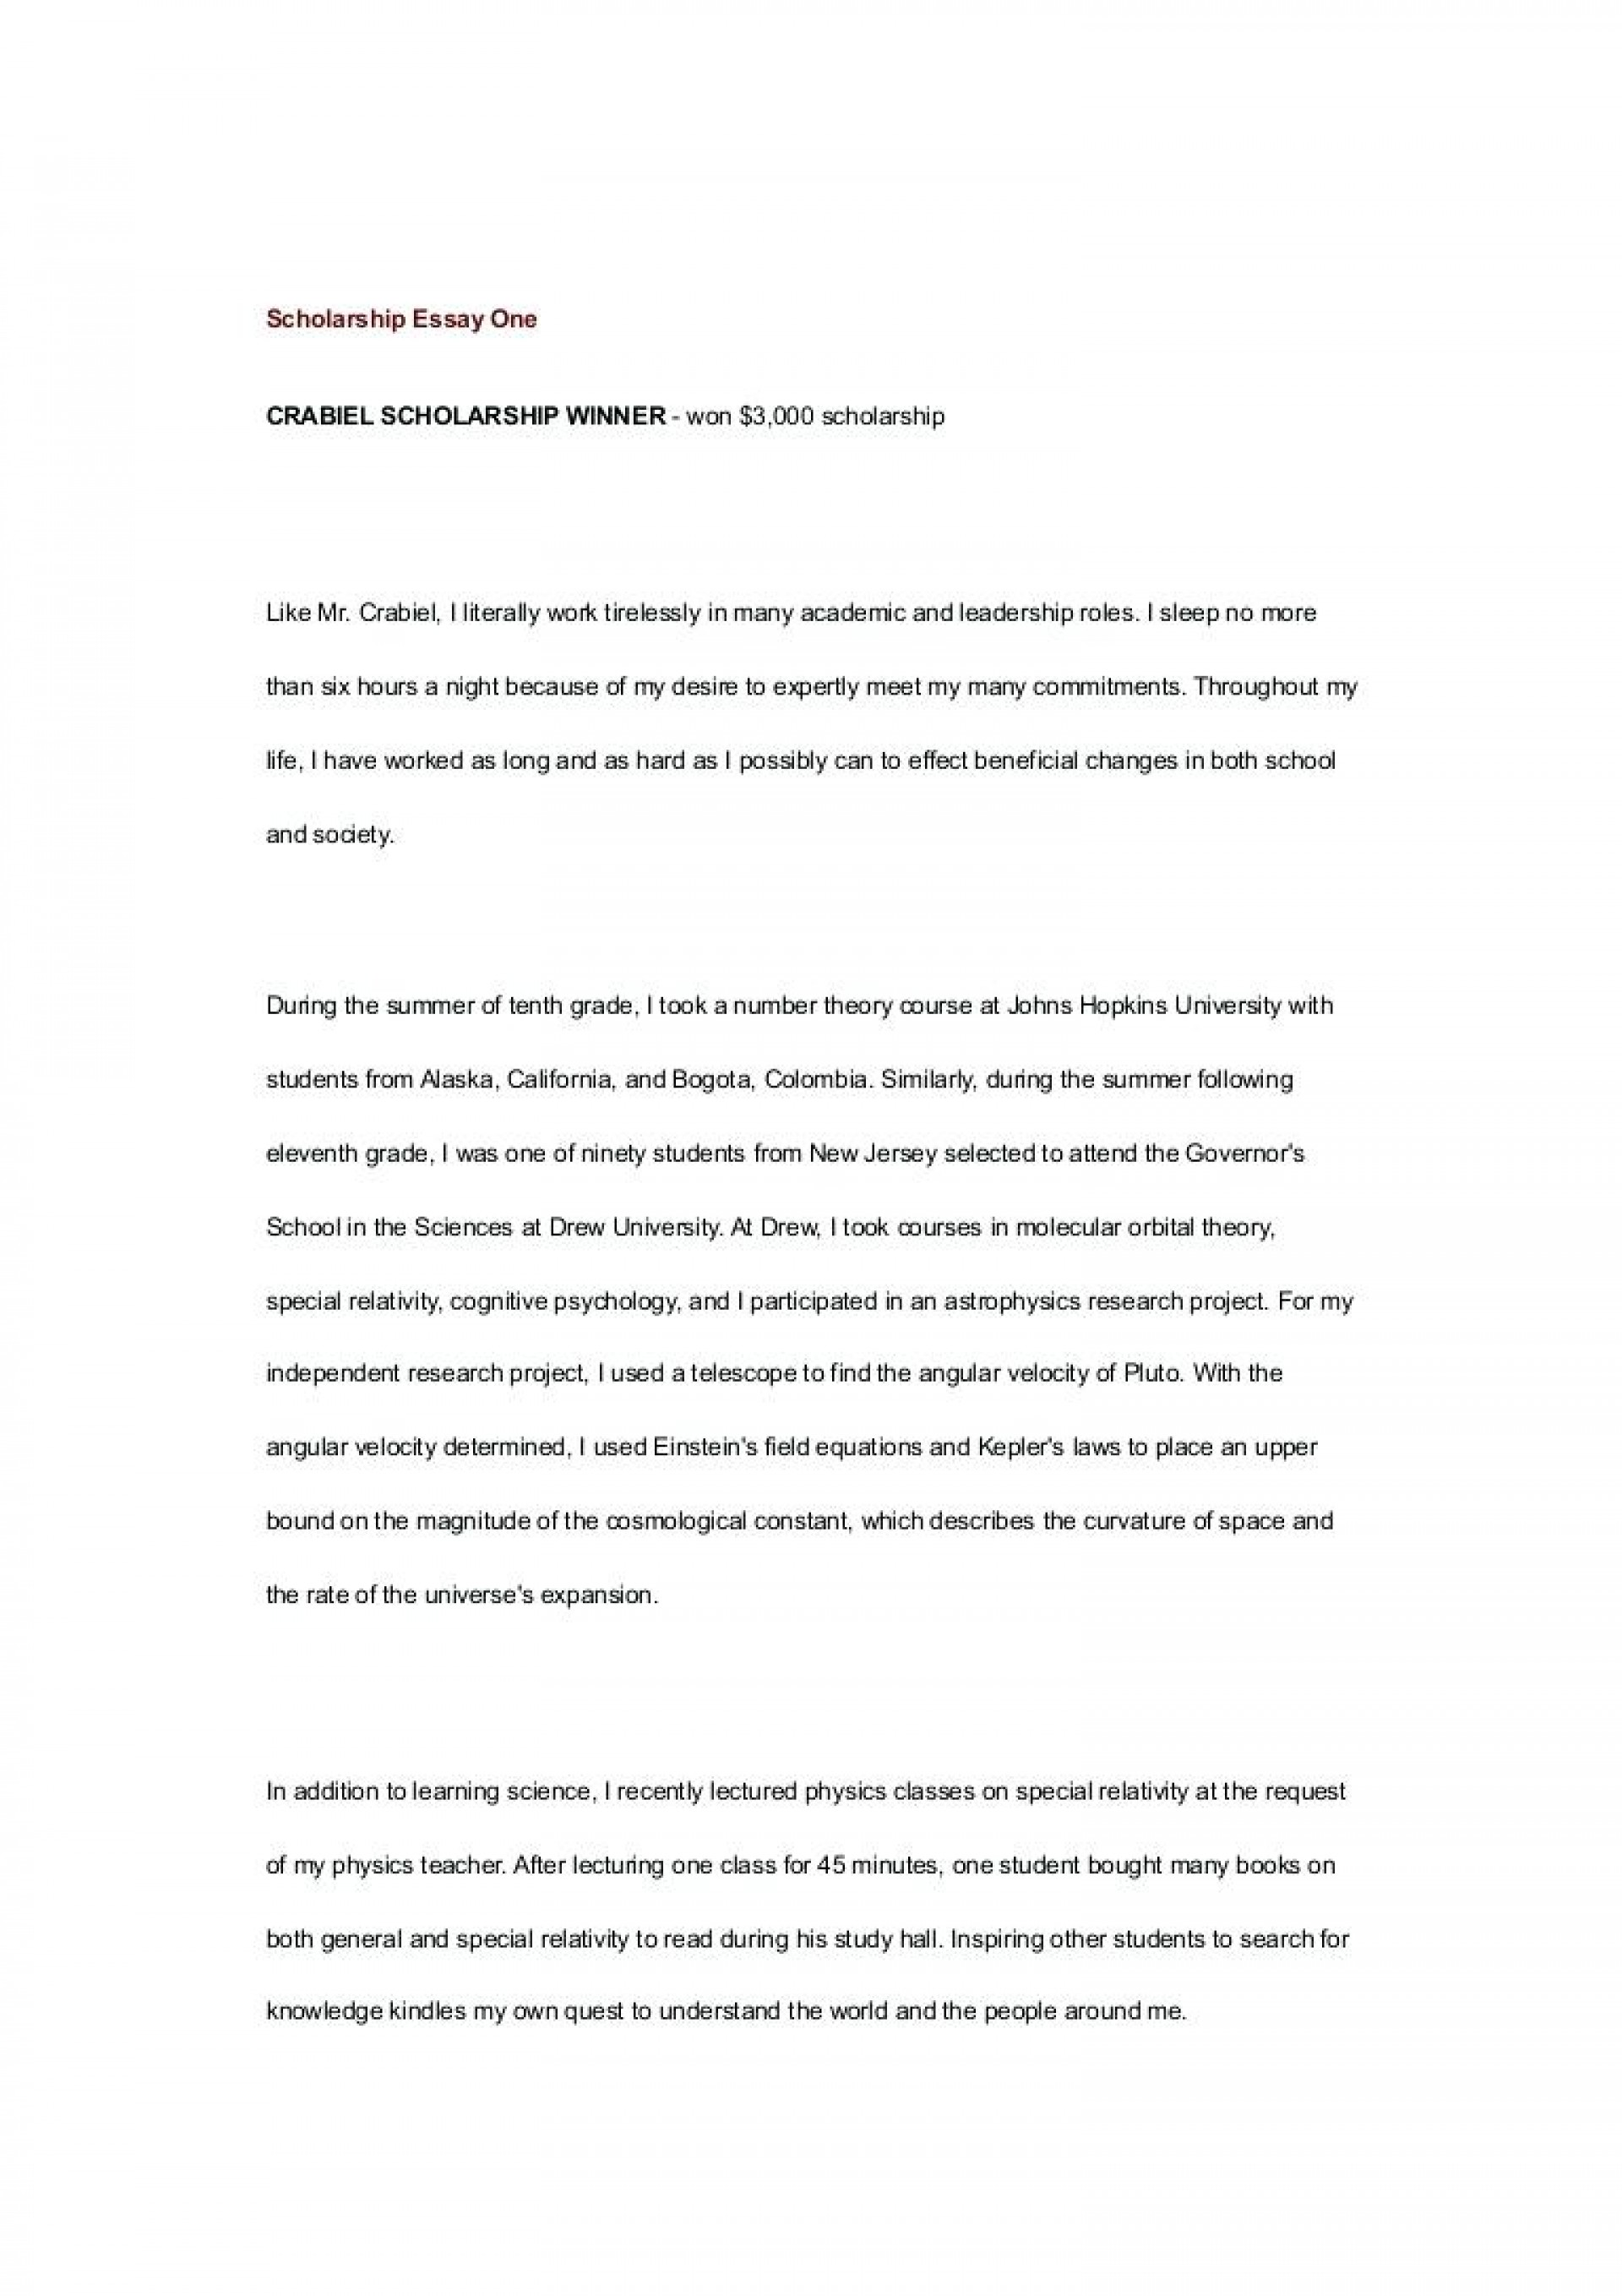 010 Essay Example No Scholarship College Application Template Legit Resume Cover Letter Thumbnail For Sample Wondrous Scholarships High School Seniors Niche Reddit 1920